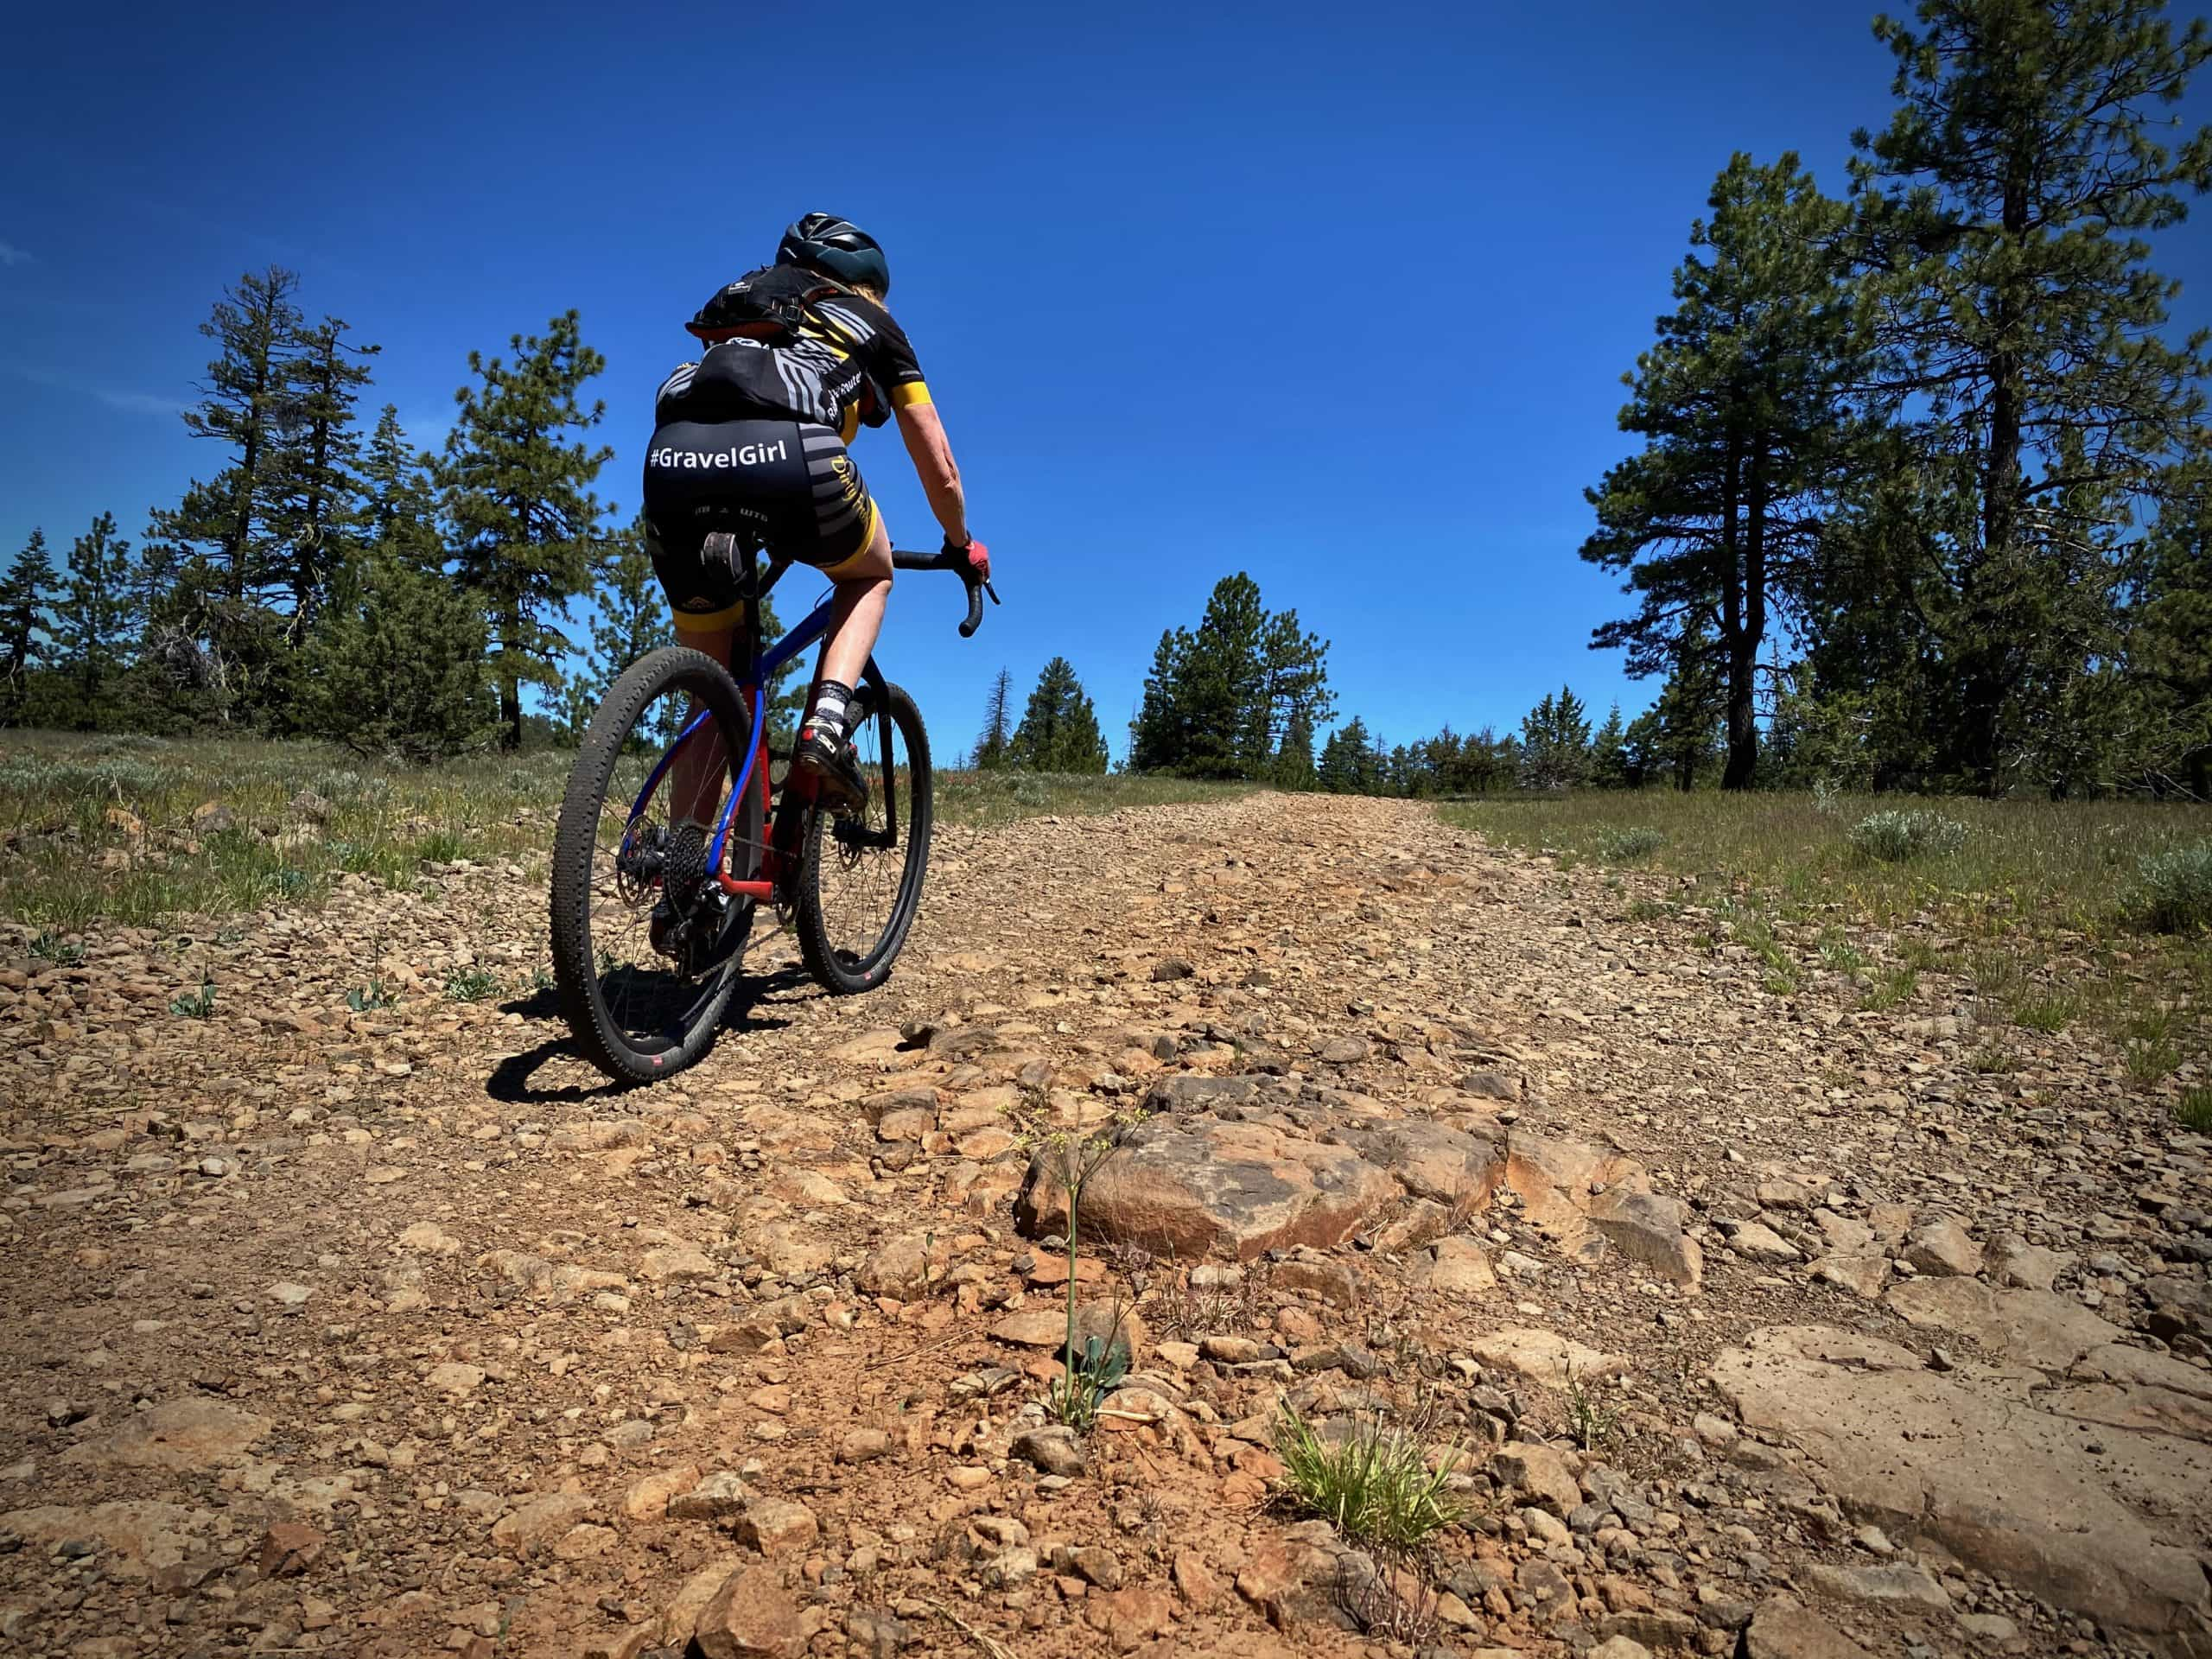 Gravel Girl working her way through a rough, gnarly gravel section in the Ochoco National forest near Prineville, Oregon.